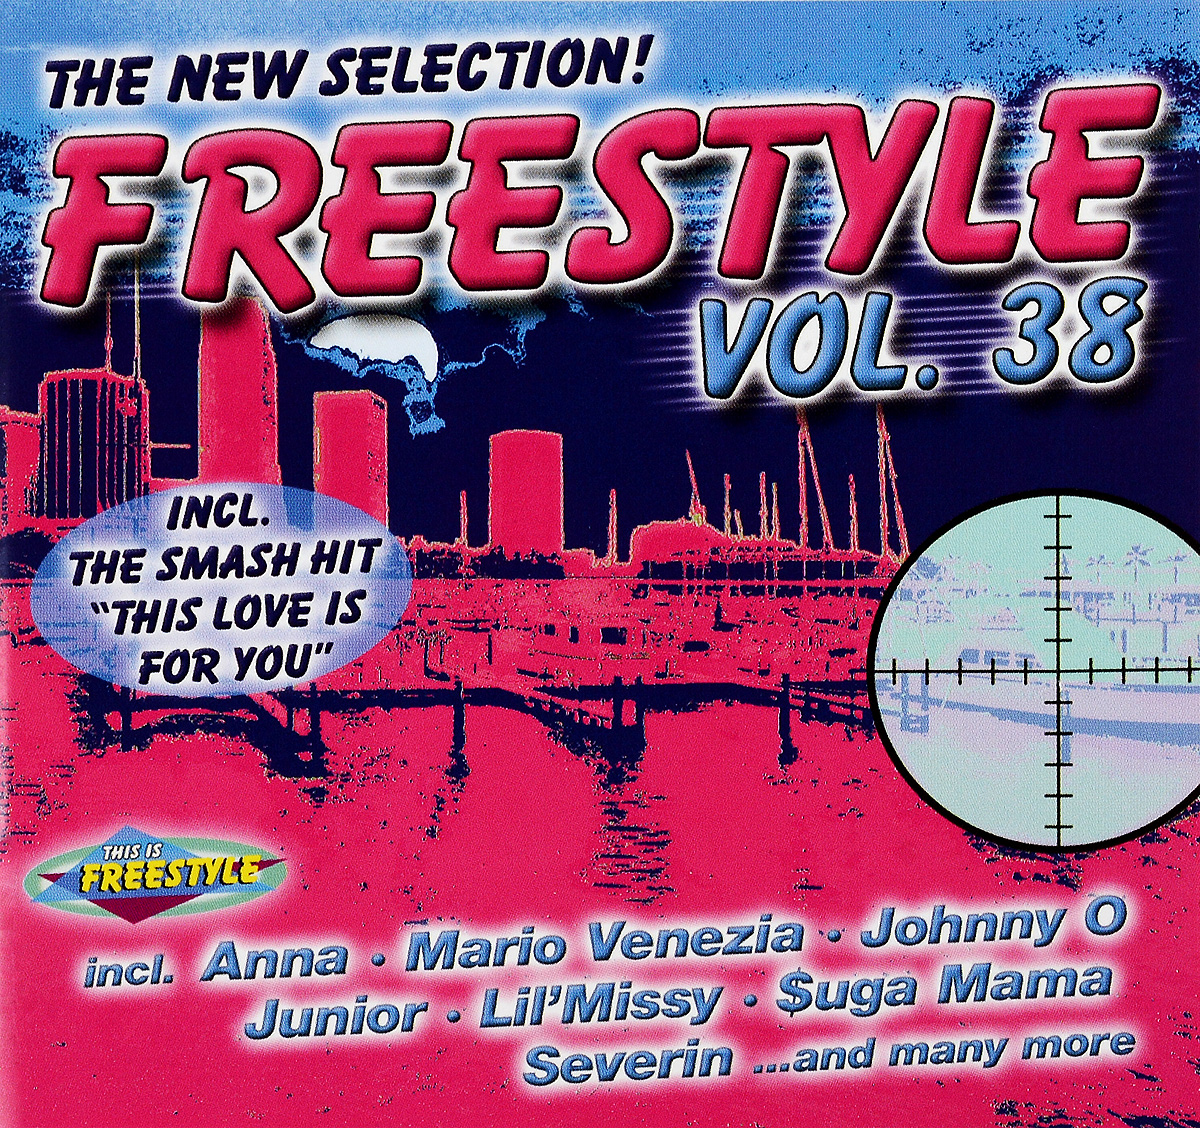 The New Selection! Freestyle. Vol. 38